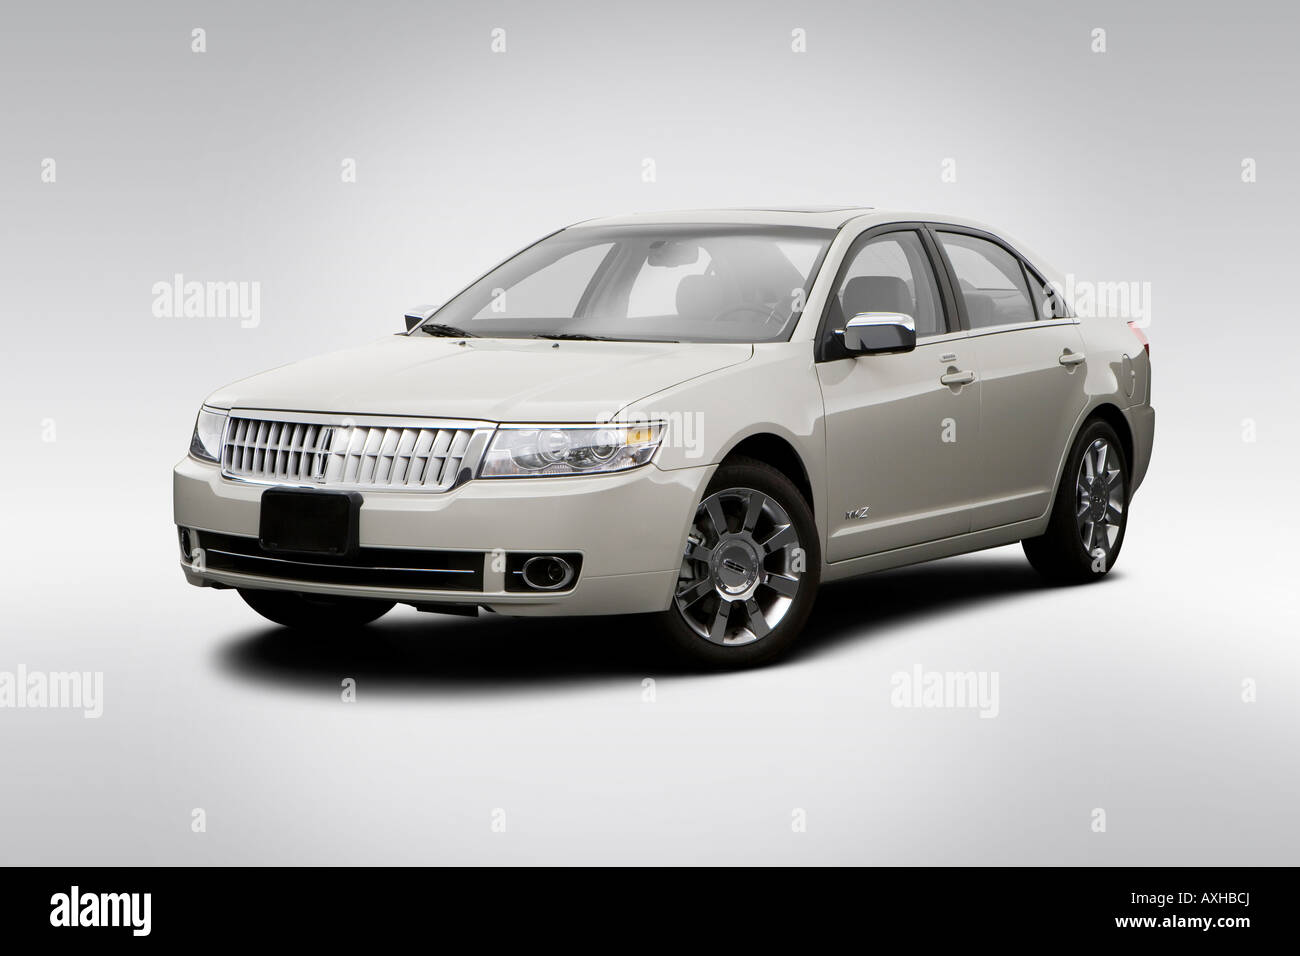 hight resolution of 2008 lincoln mkz 3 5l v6 in beige front angle view